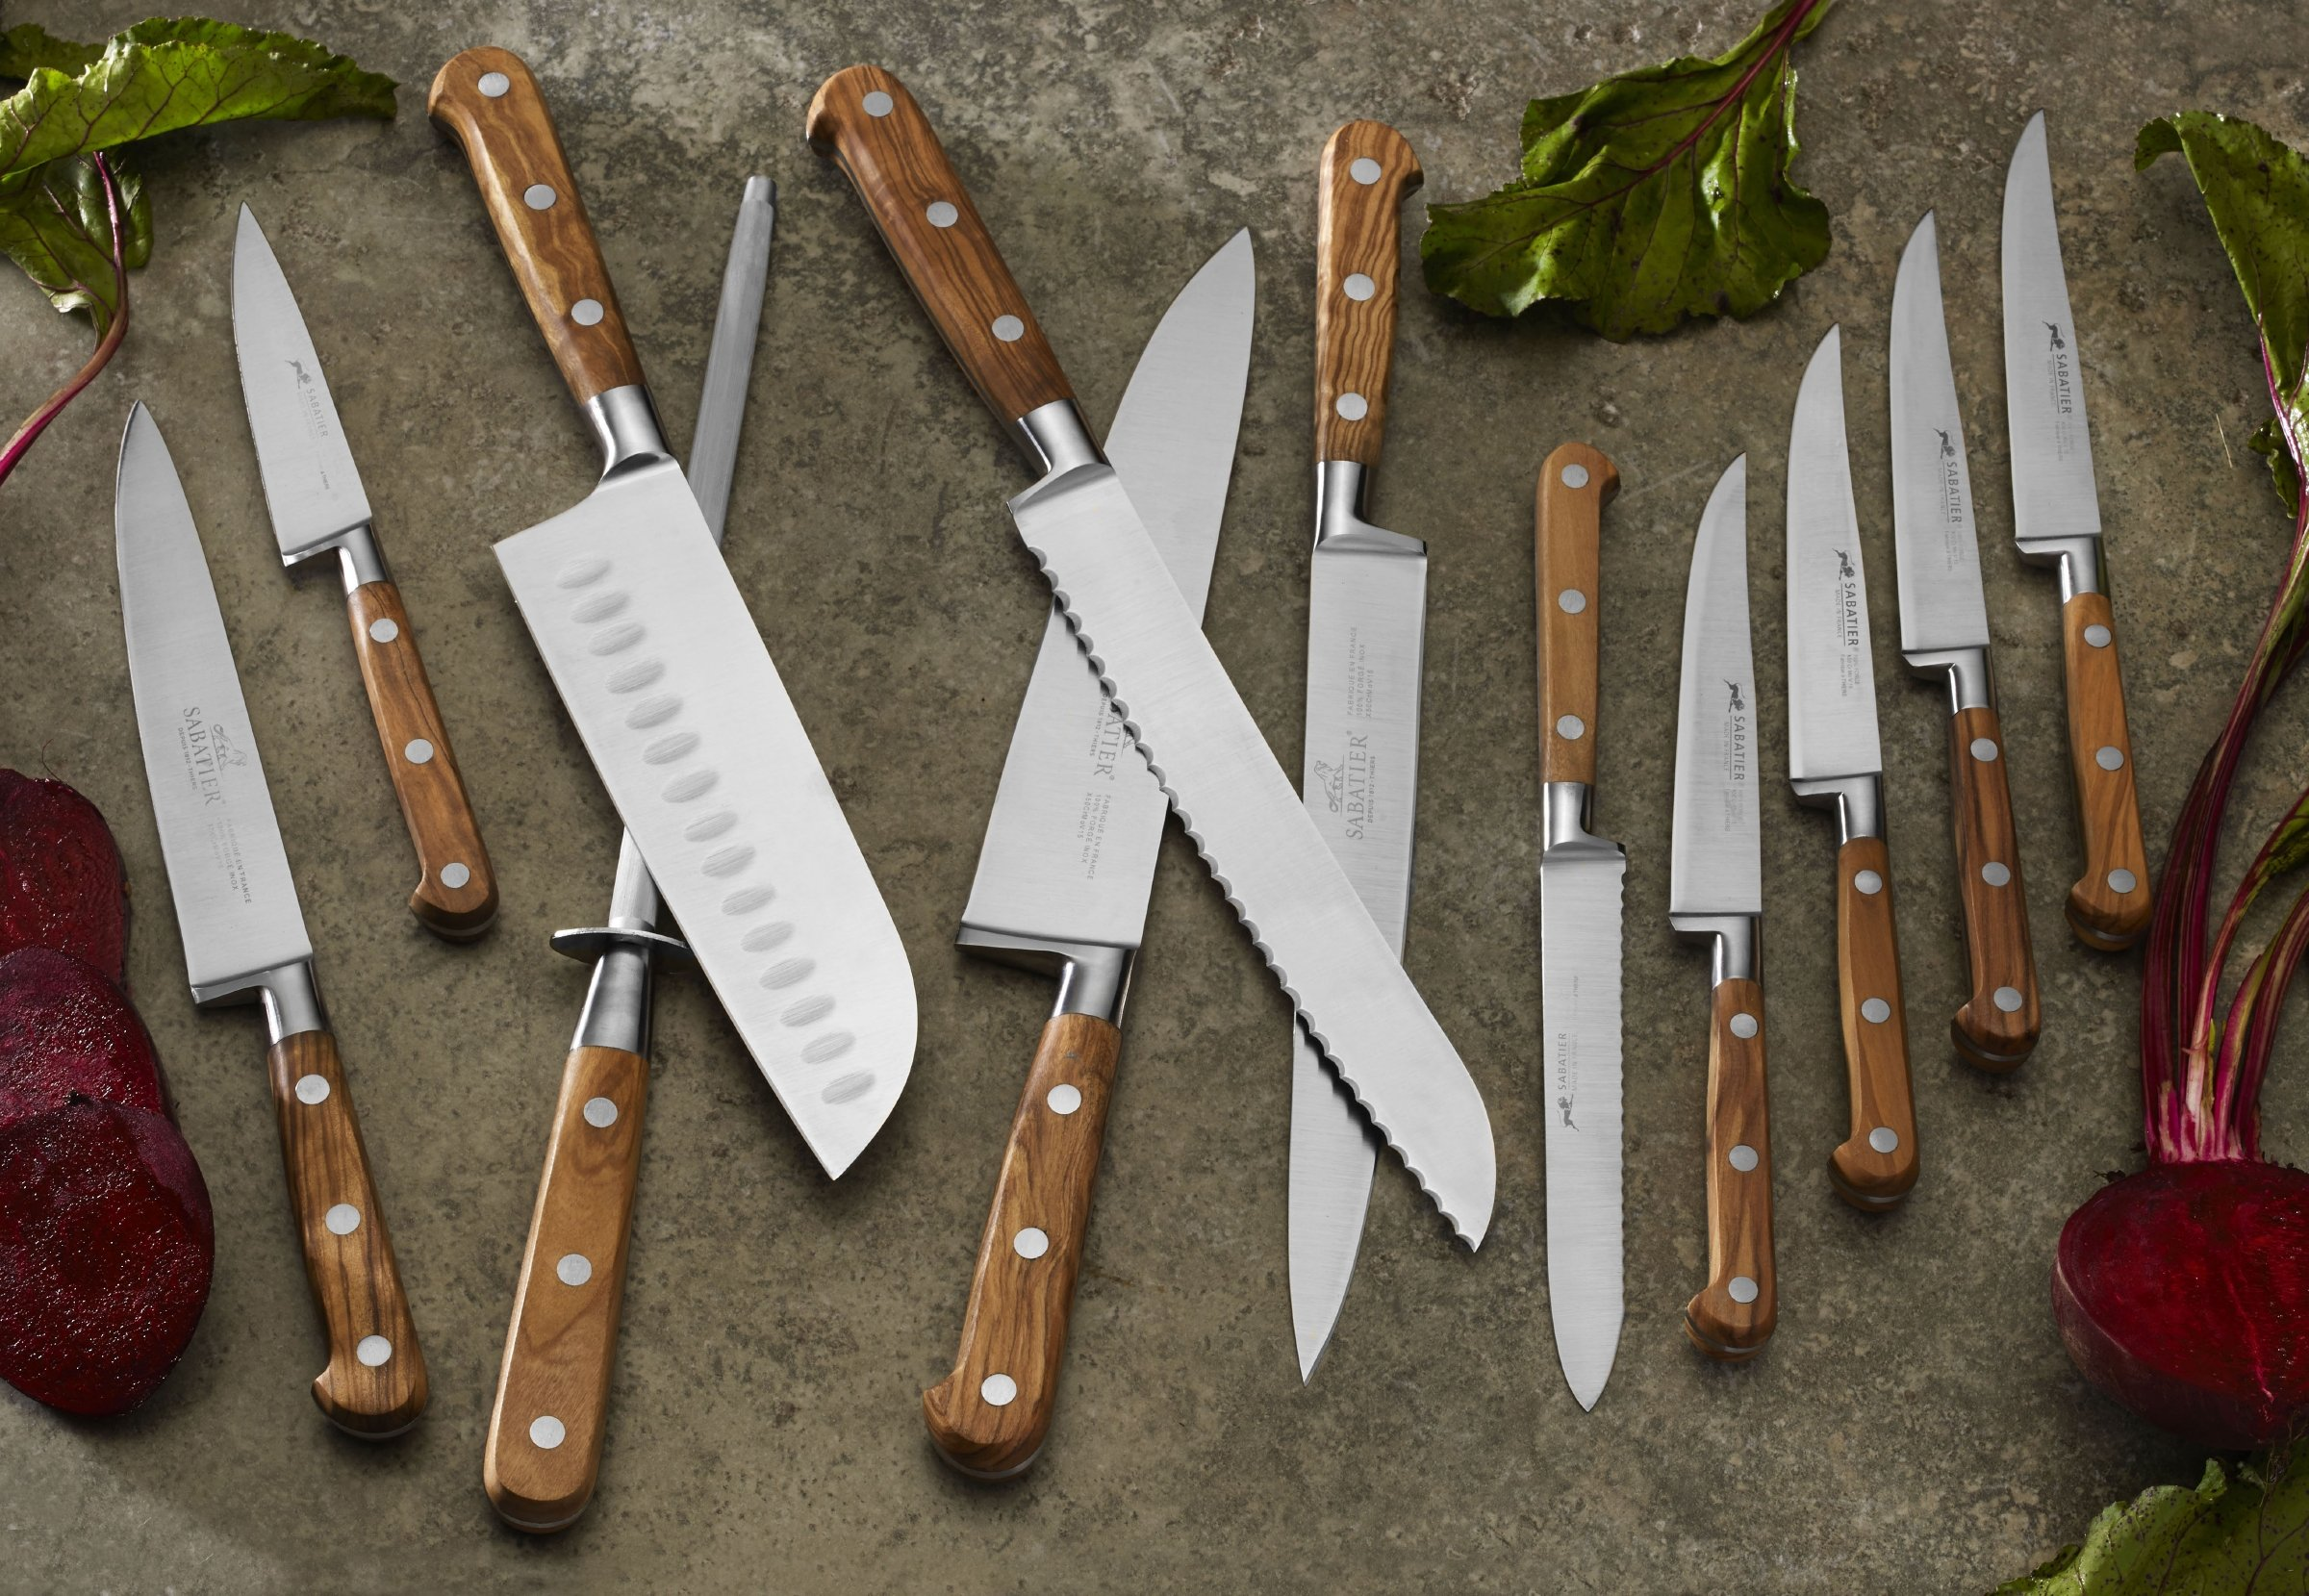 Sabatier Olivewood Stainless Steel Bread Knife, 8-Inch by Sabatier (Image #3)